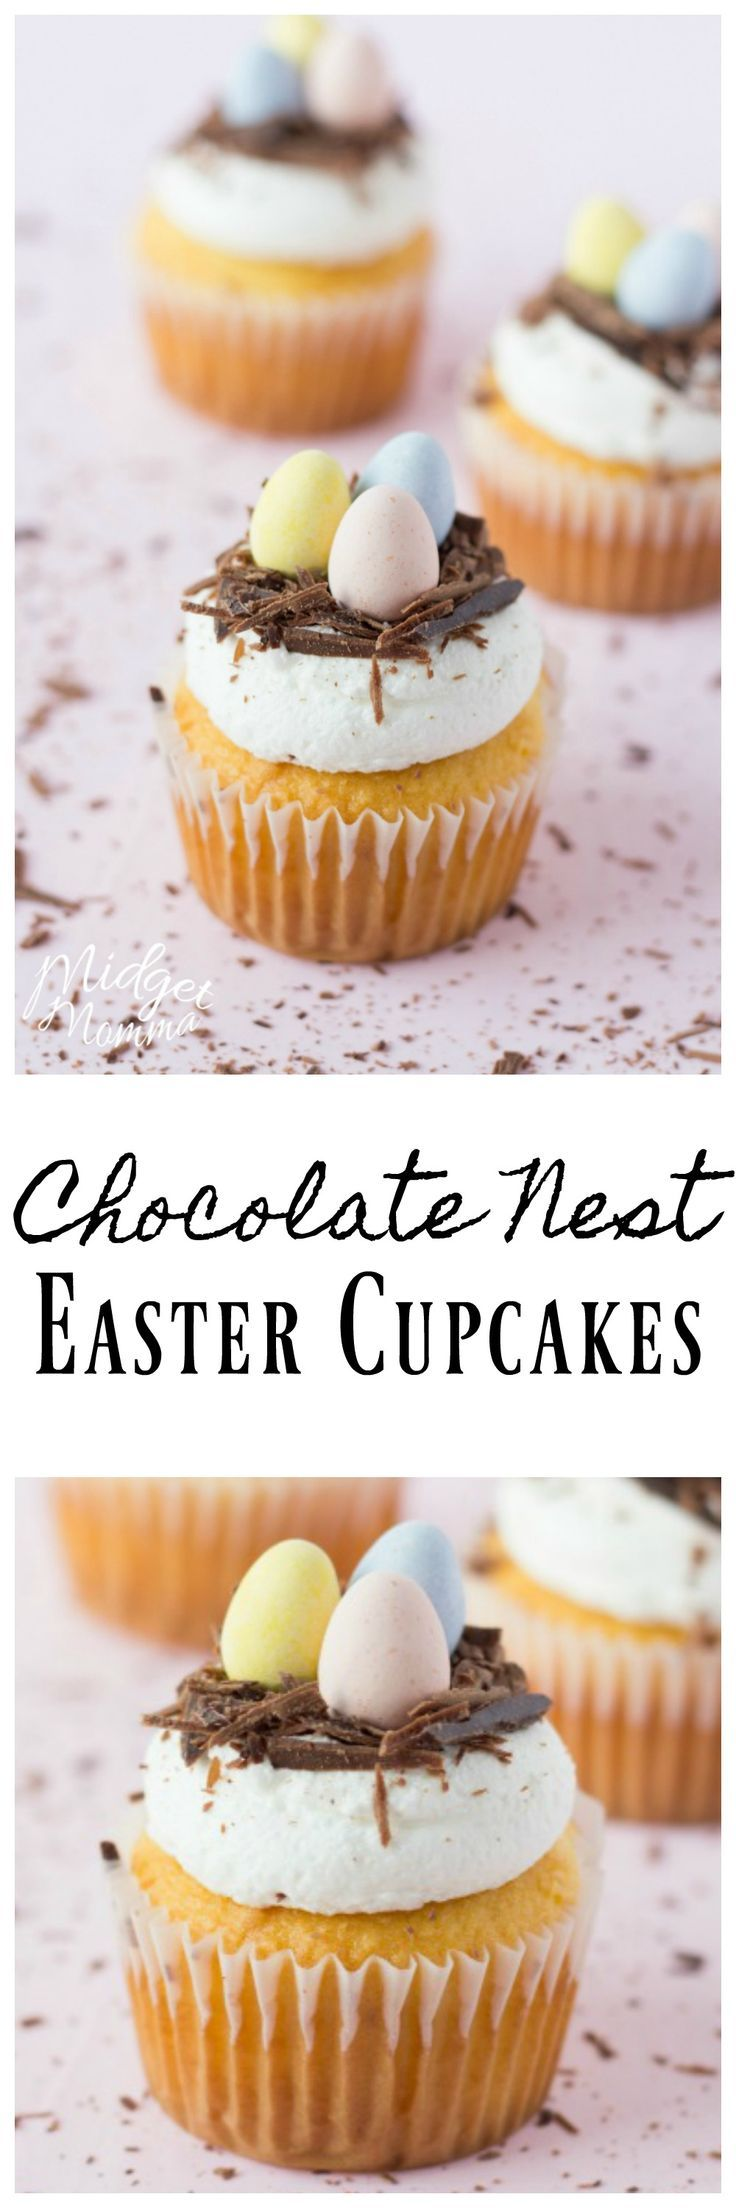 Chocolate Nest Cupcakes for Easter made with homemade buttercream icing. They look very elegant but they are very simple to make.